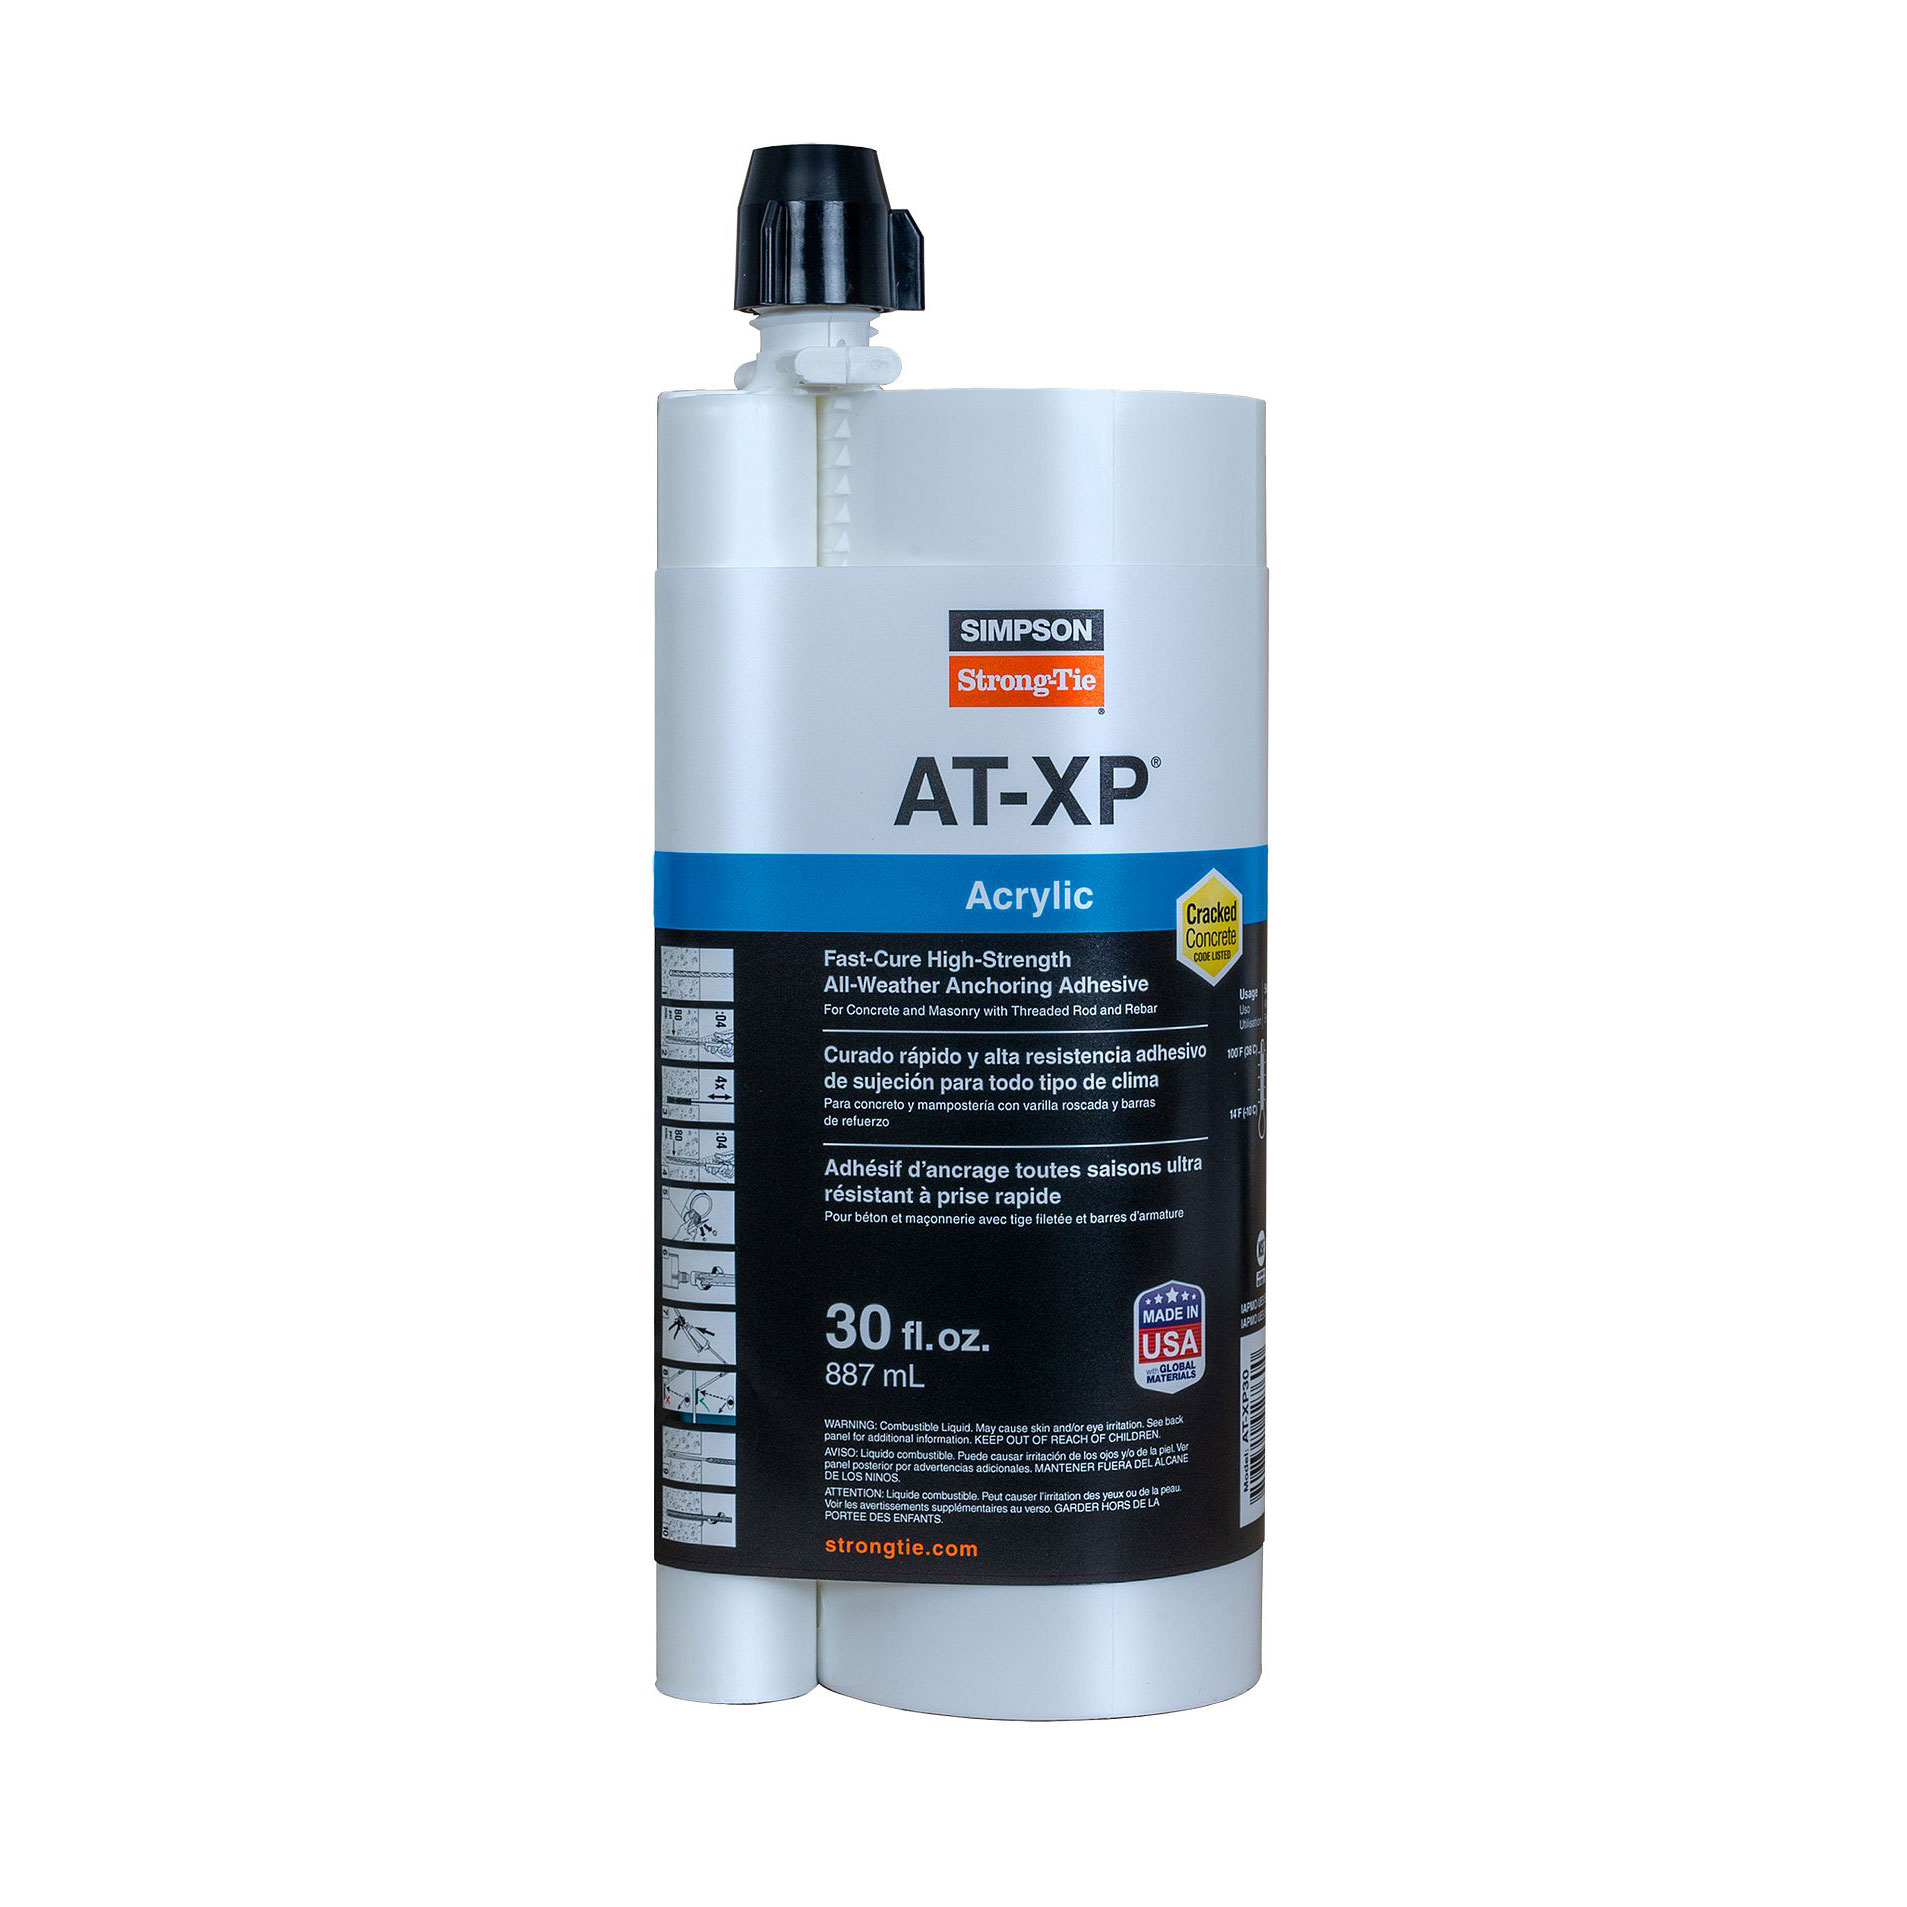 Simpson Strong-Tie AT-XP30 Acrylic Adhesive for Concrete and Masonry Anchoring - 30 oz. Dual Cartridge AT-XP30